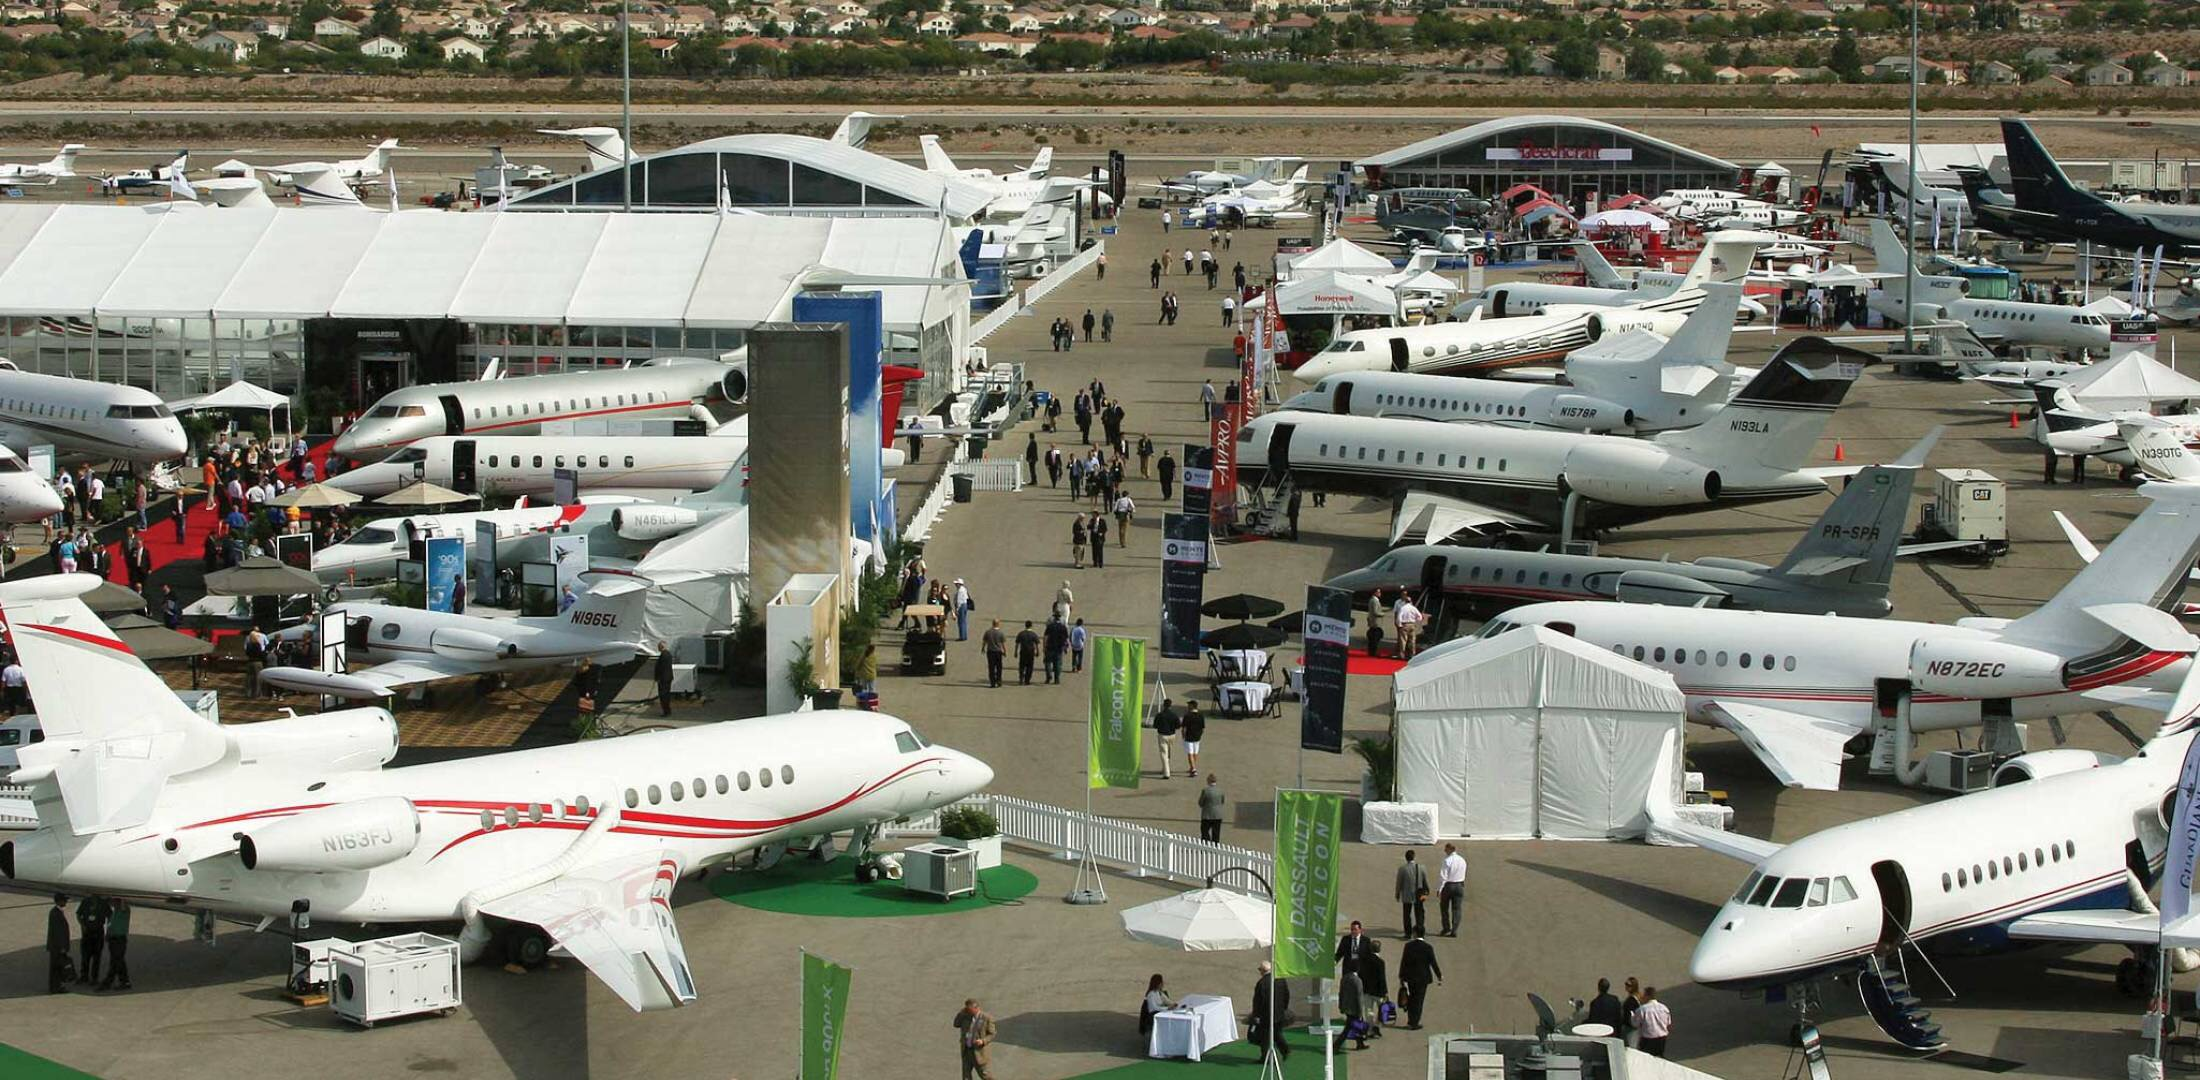 NBAA in Las Vegas is next week